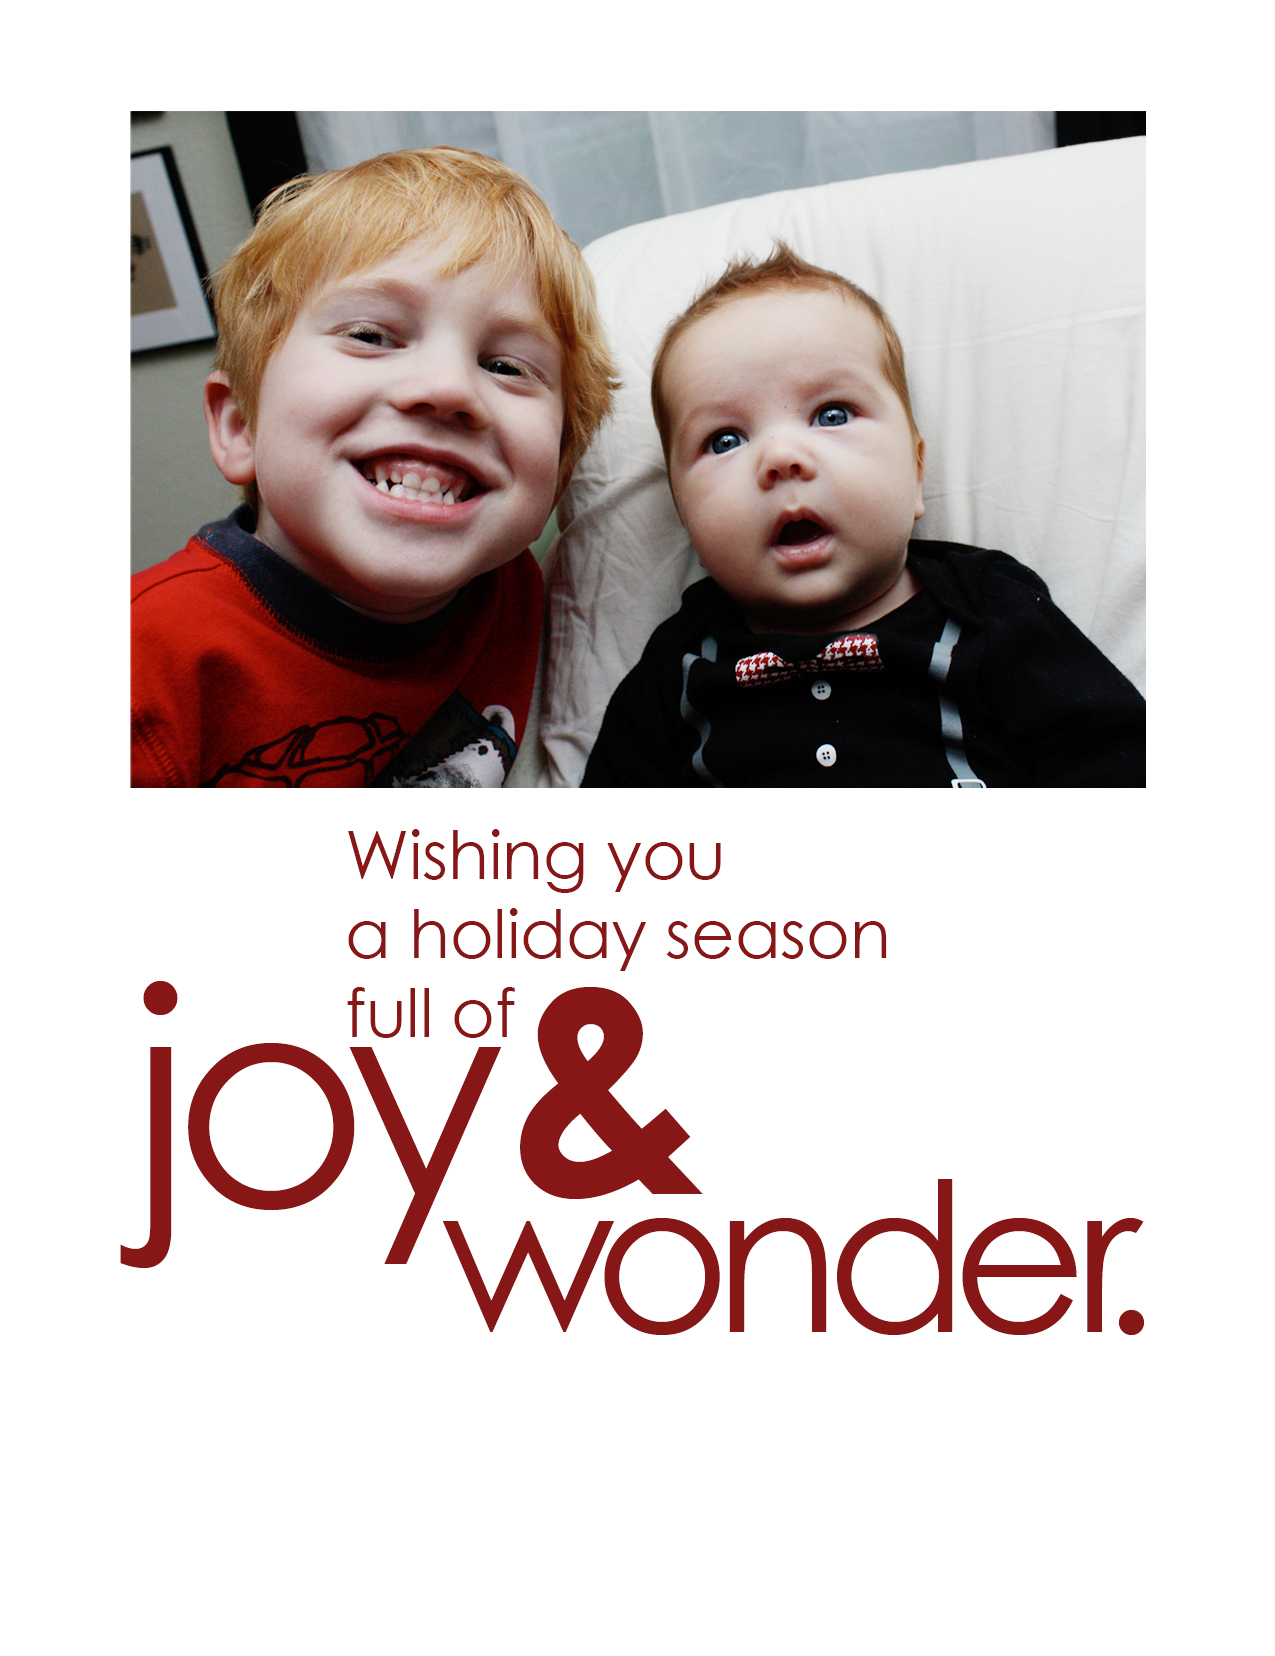 2011 Christmas Card—probably my favorite yet.